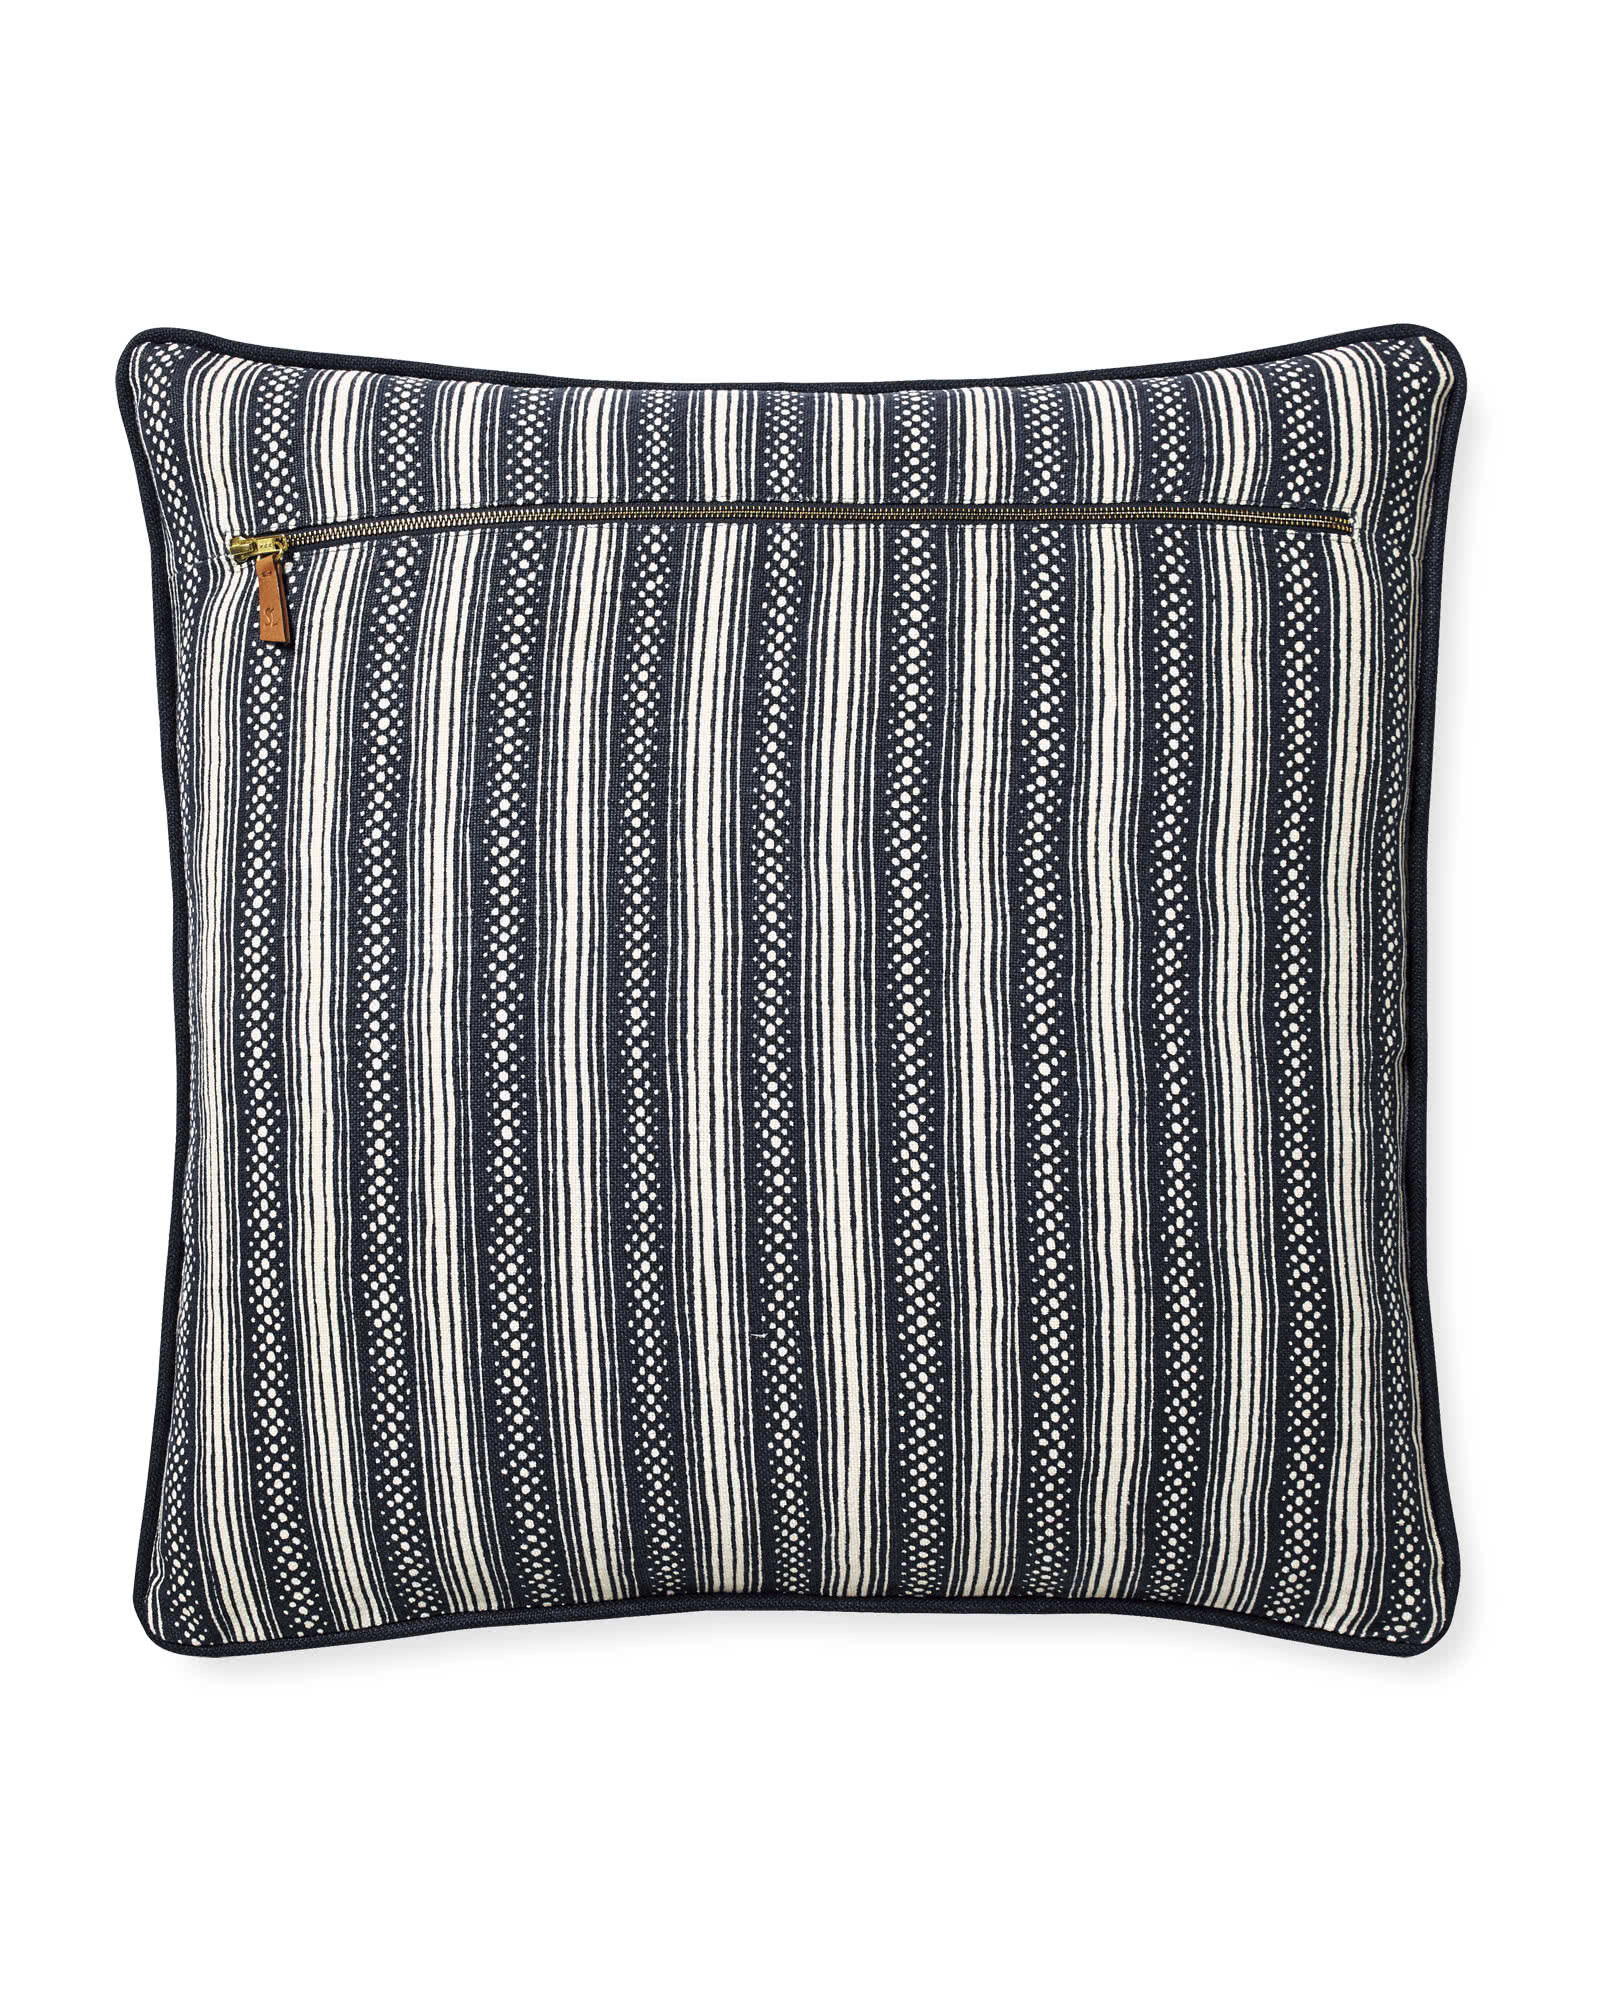 Stowe Pillow Cover